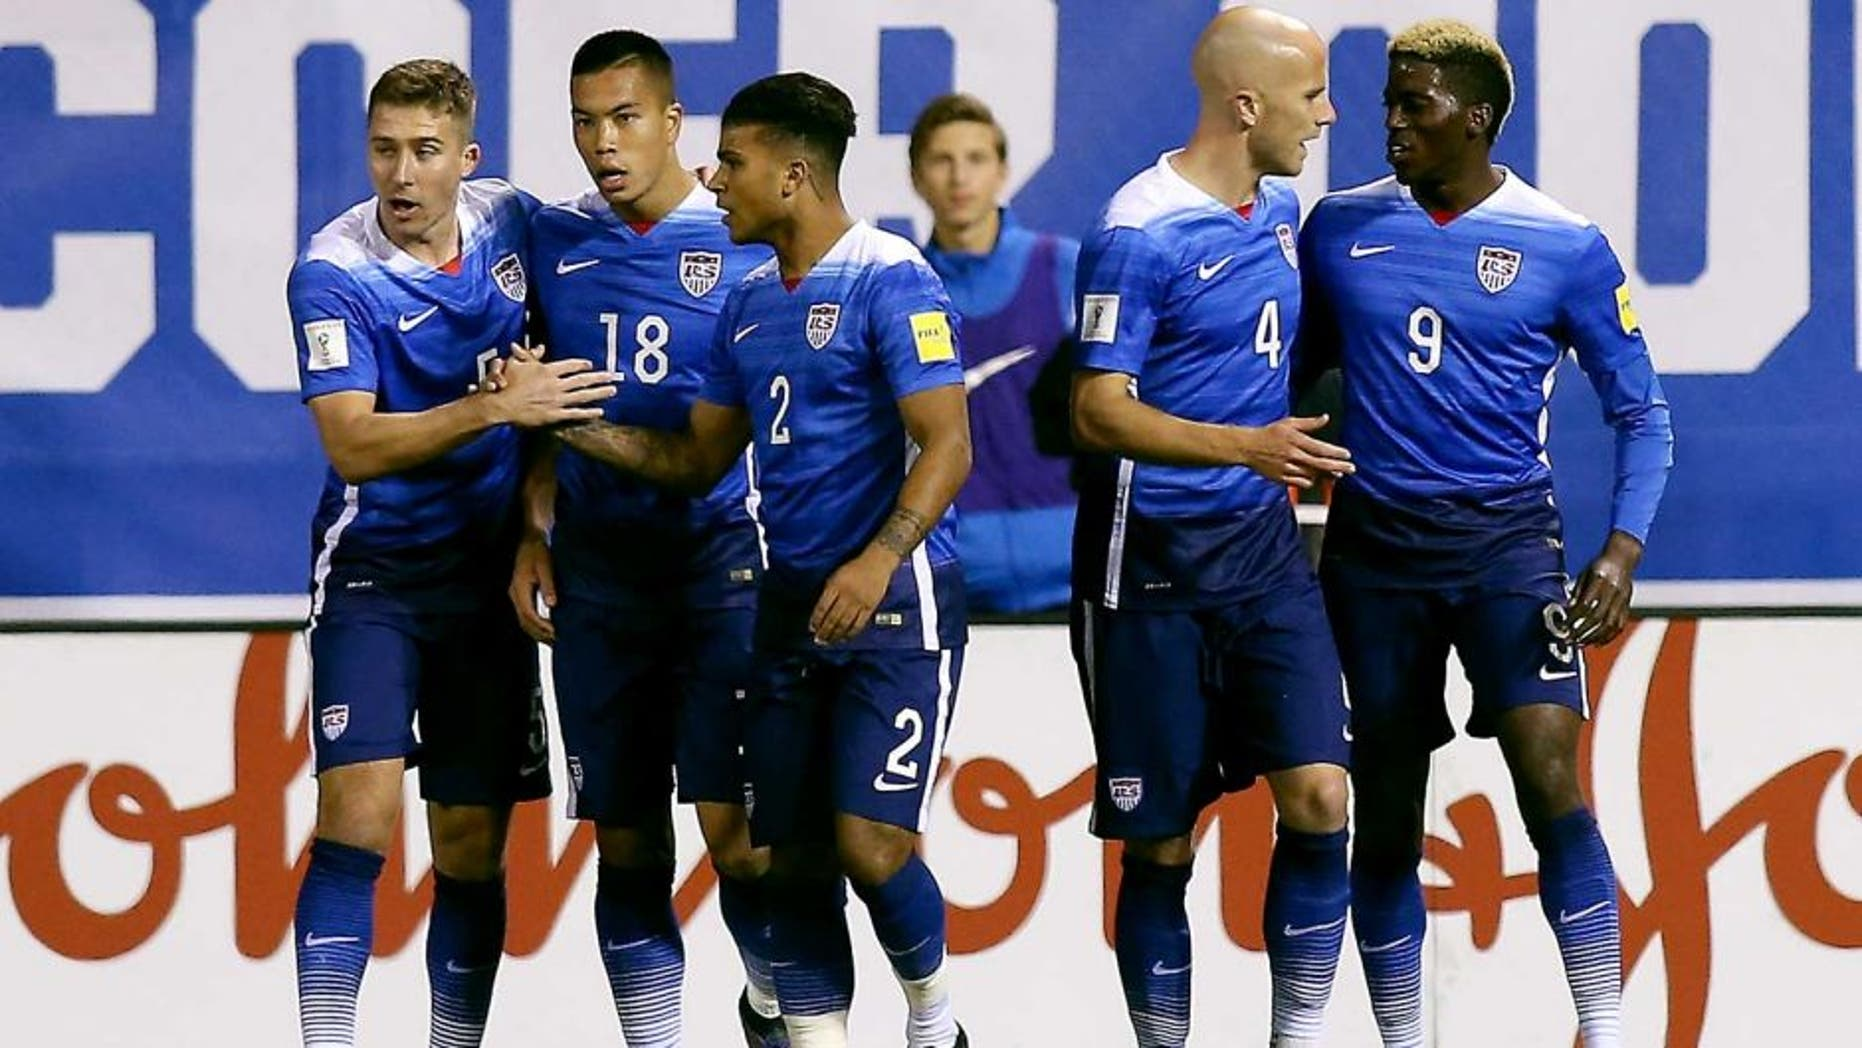 Nov 13, 2015; St.Louis, MO, USA; USA forward Bobby Wood (18) is congratulated by teammates after scoring during the first half of a FIFA World Cup Qualifying soccer match St. Vincent & The Grenadines at Busch Stadium. USA won 6-1. Mandatory Credit: Scott Kane-USA TODAY Sports